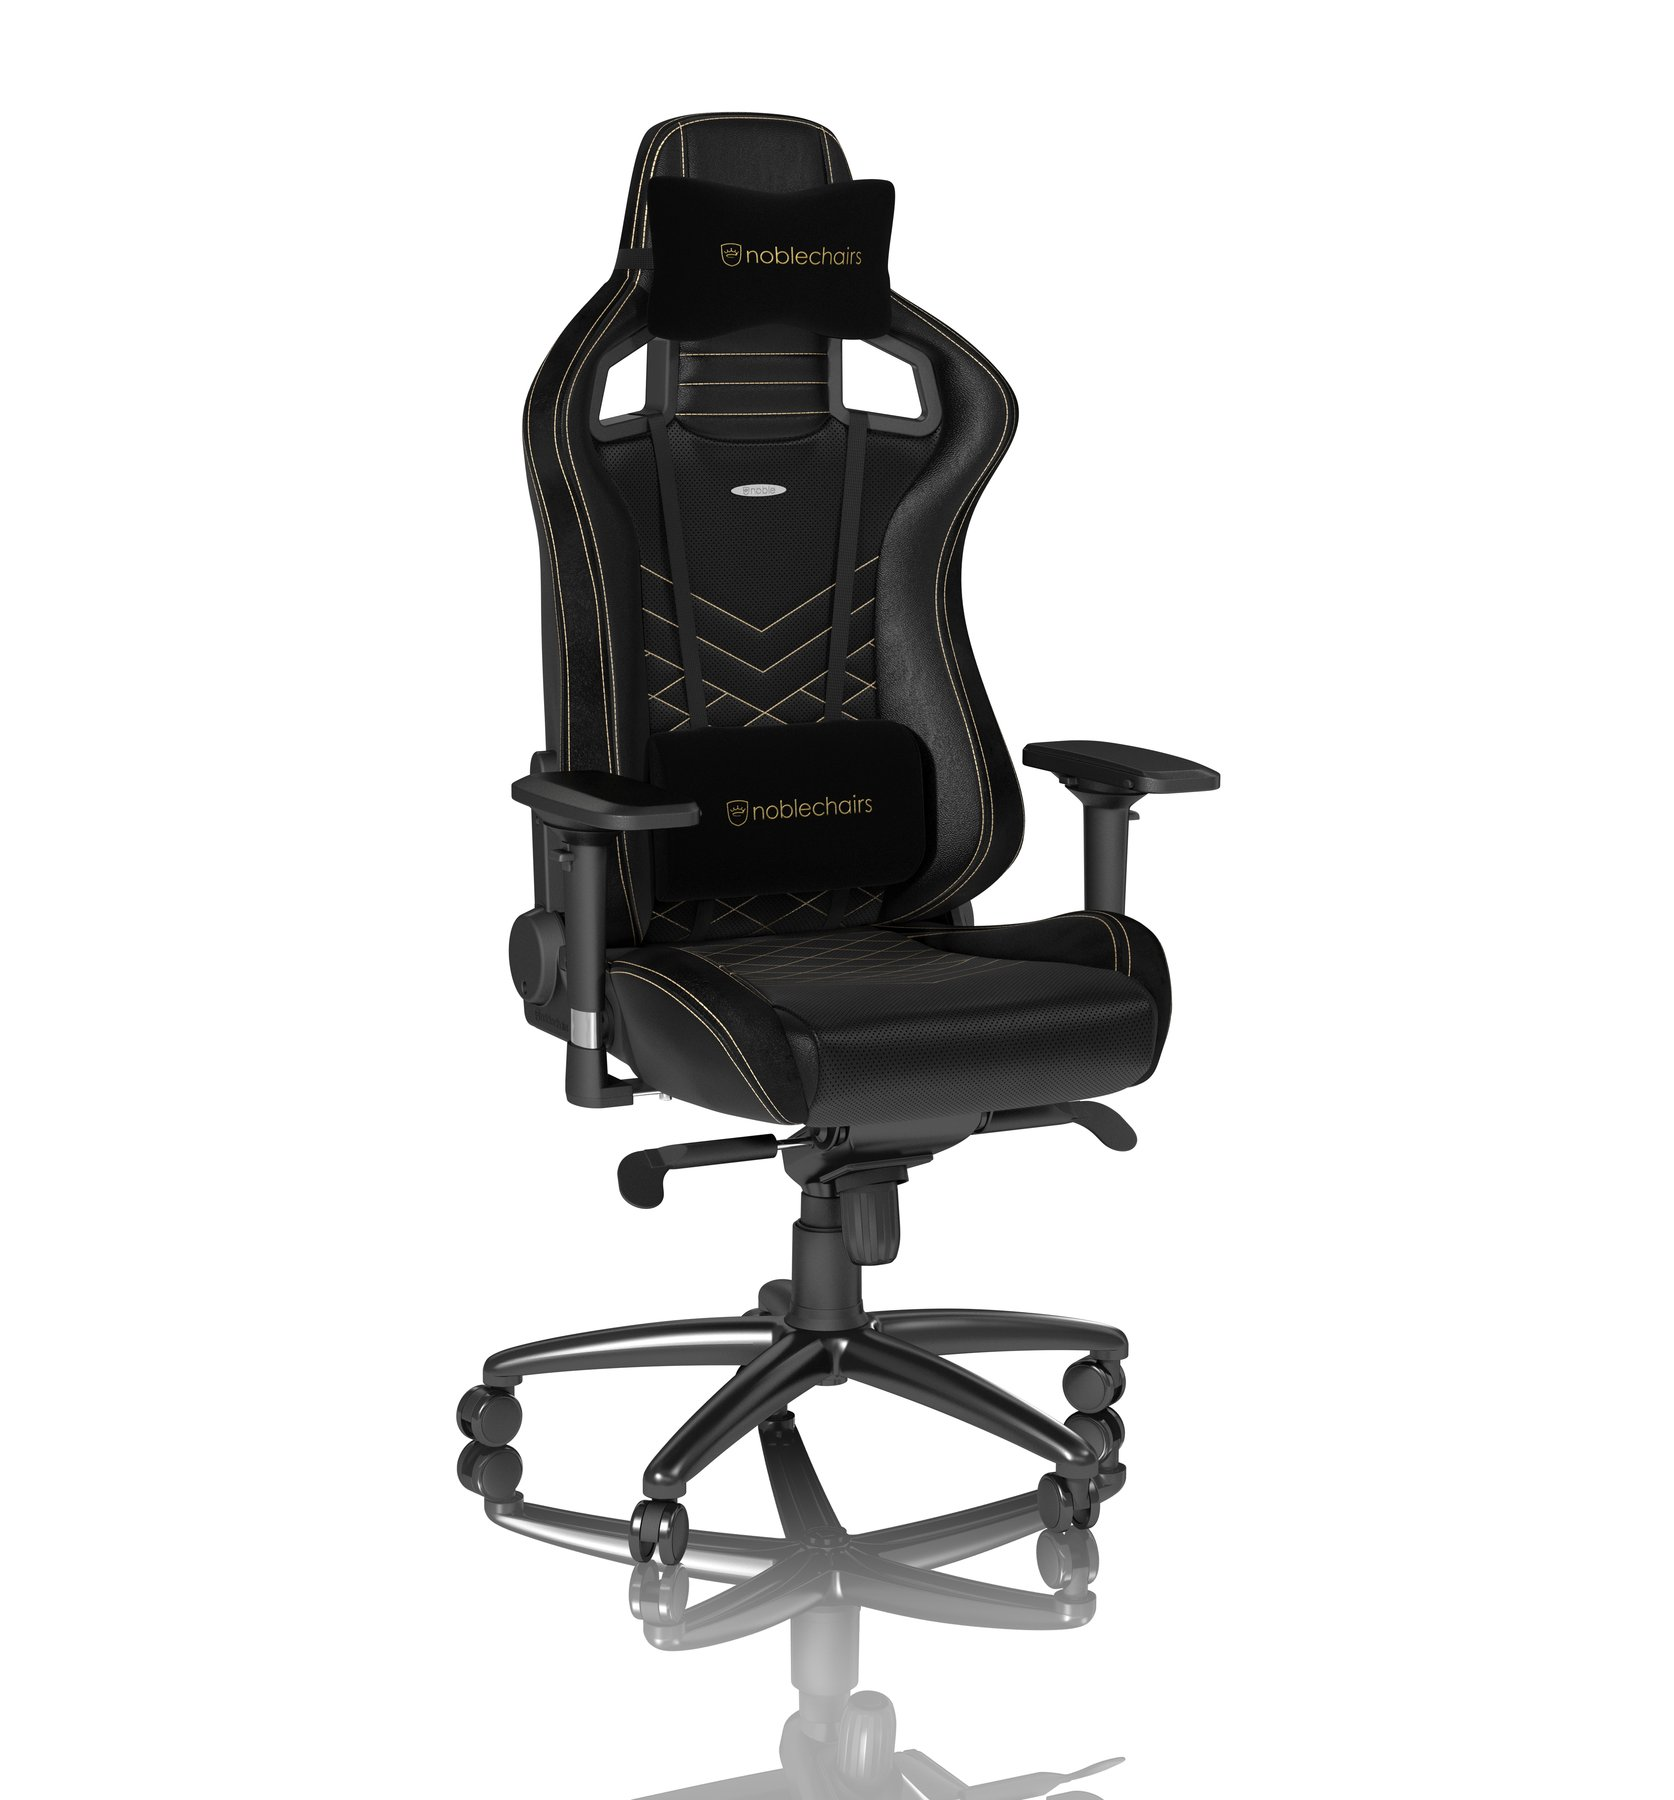 noblechairs EPIC Gaming Chair Breathable, 4D armrests, 60mm casters - black/gold - CASEKING 2.35.63.01.006